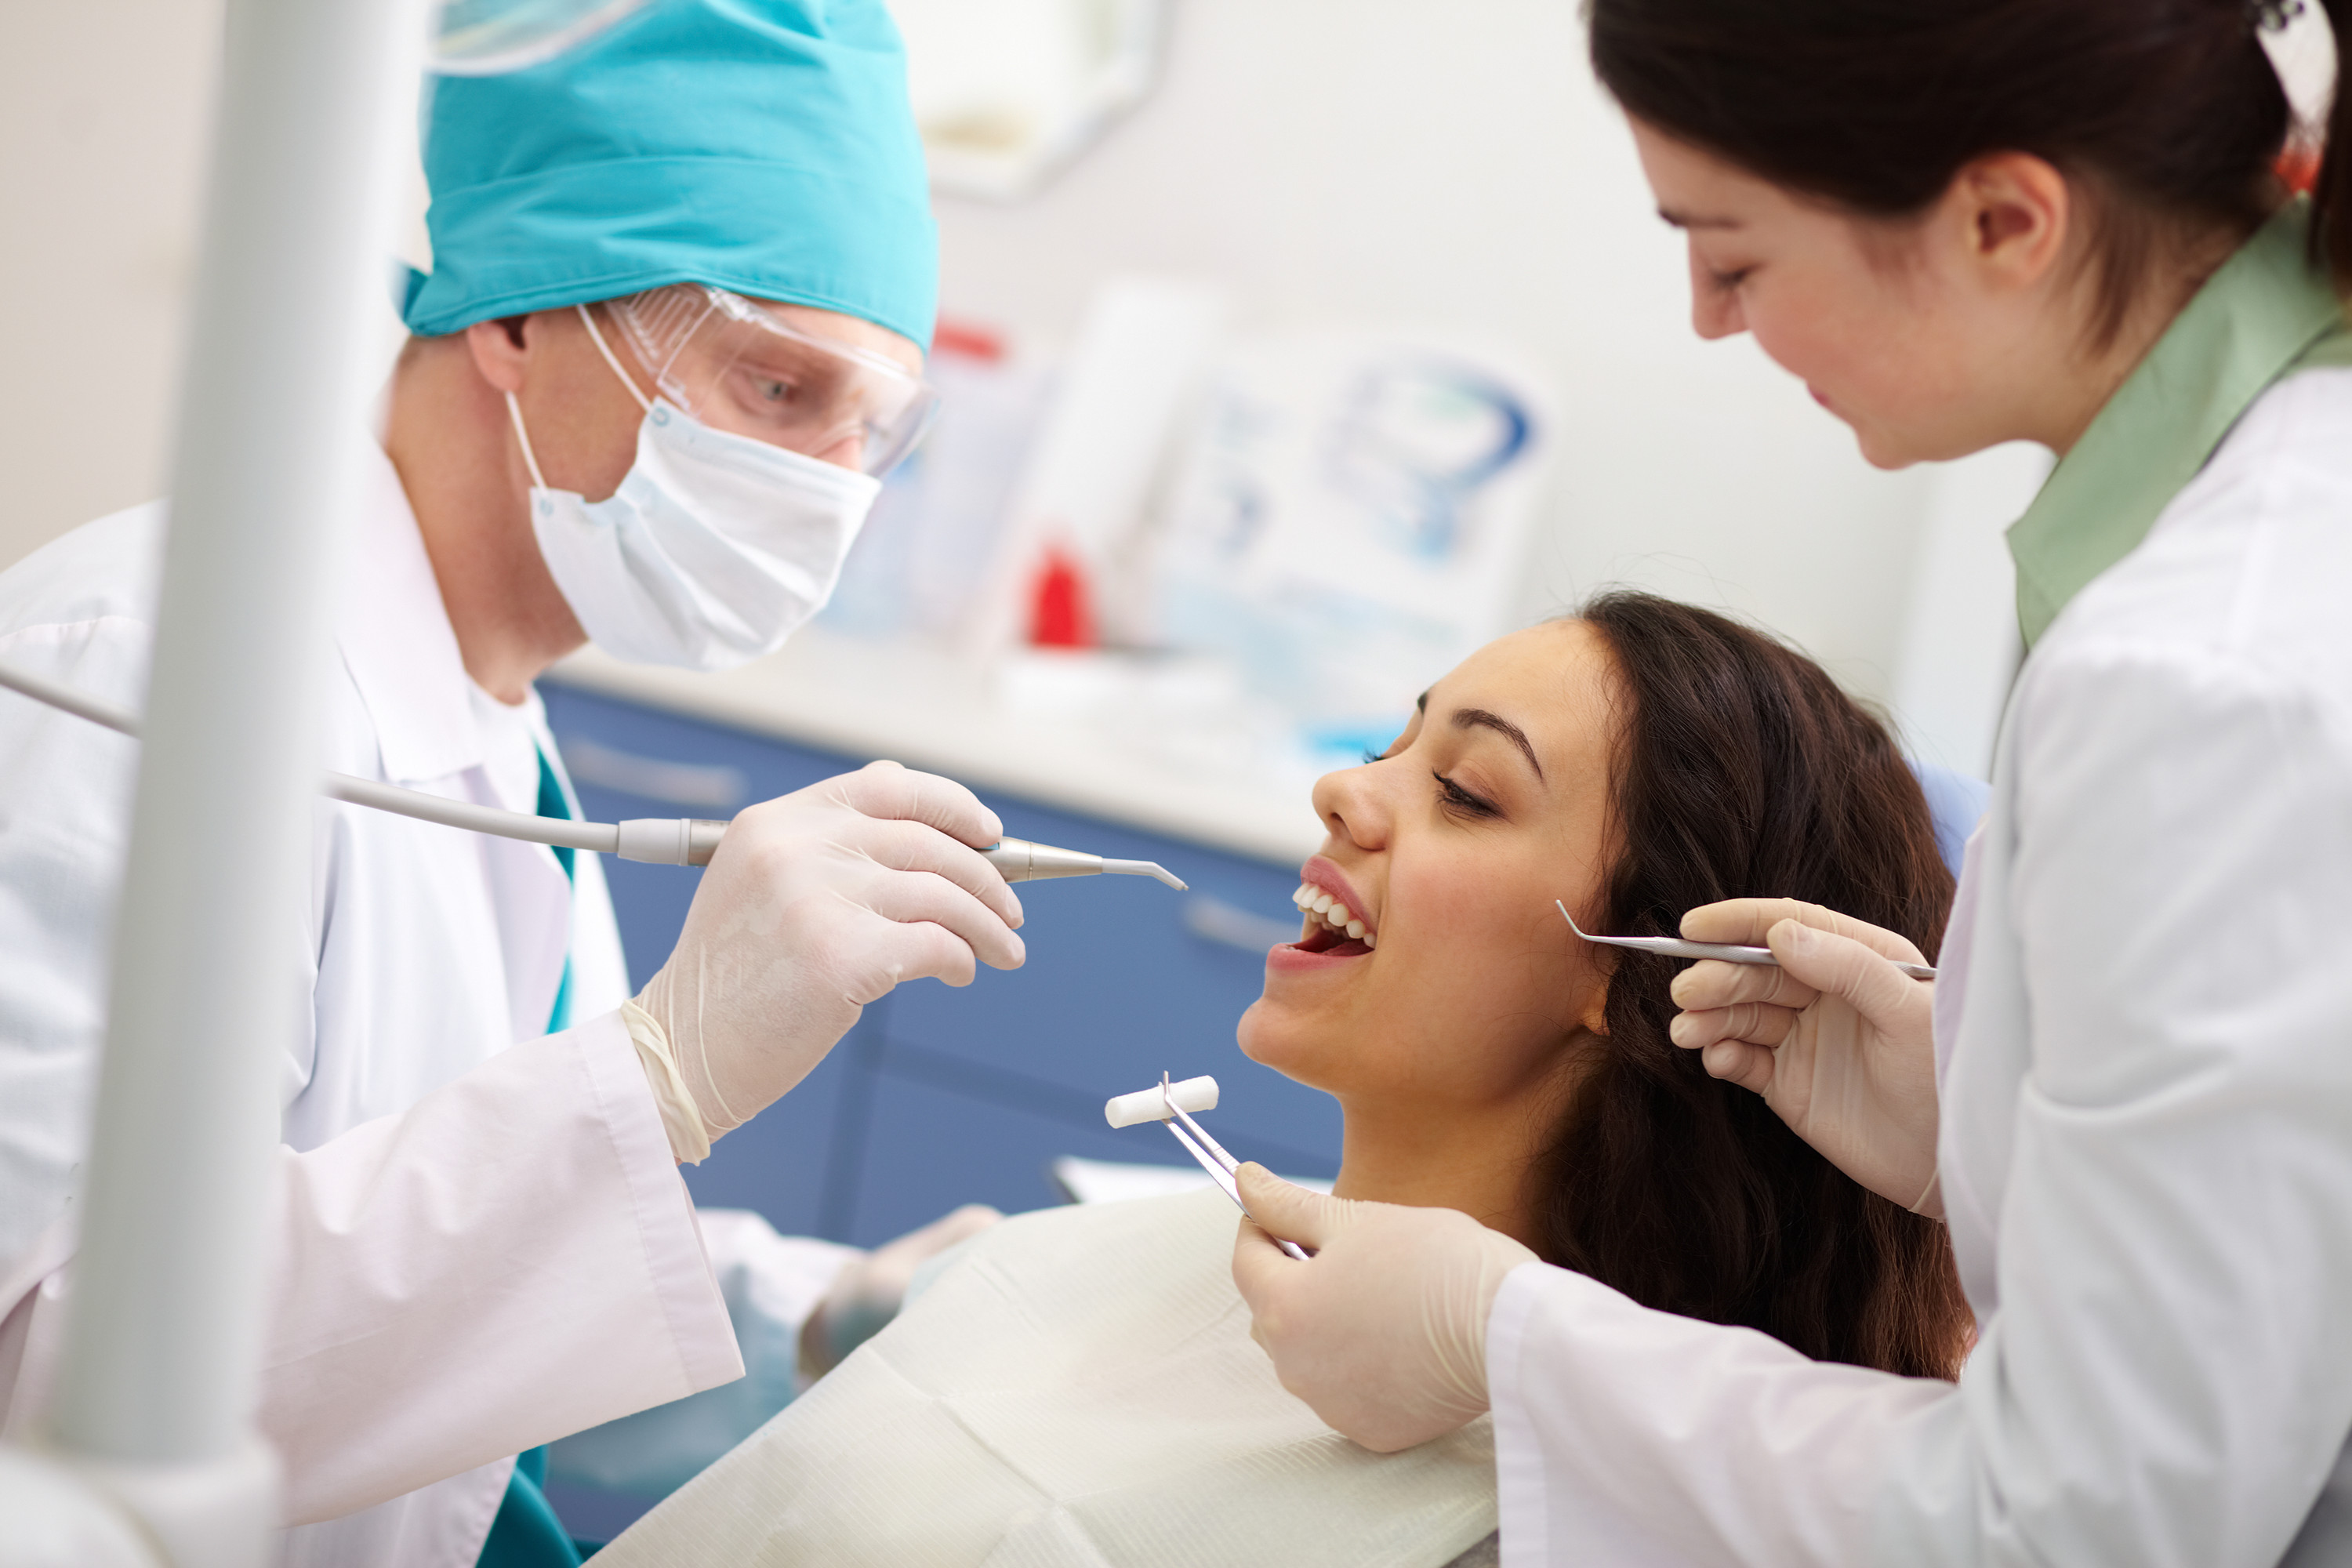 Why to prefer emergency dental services?